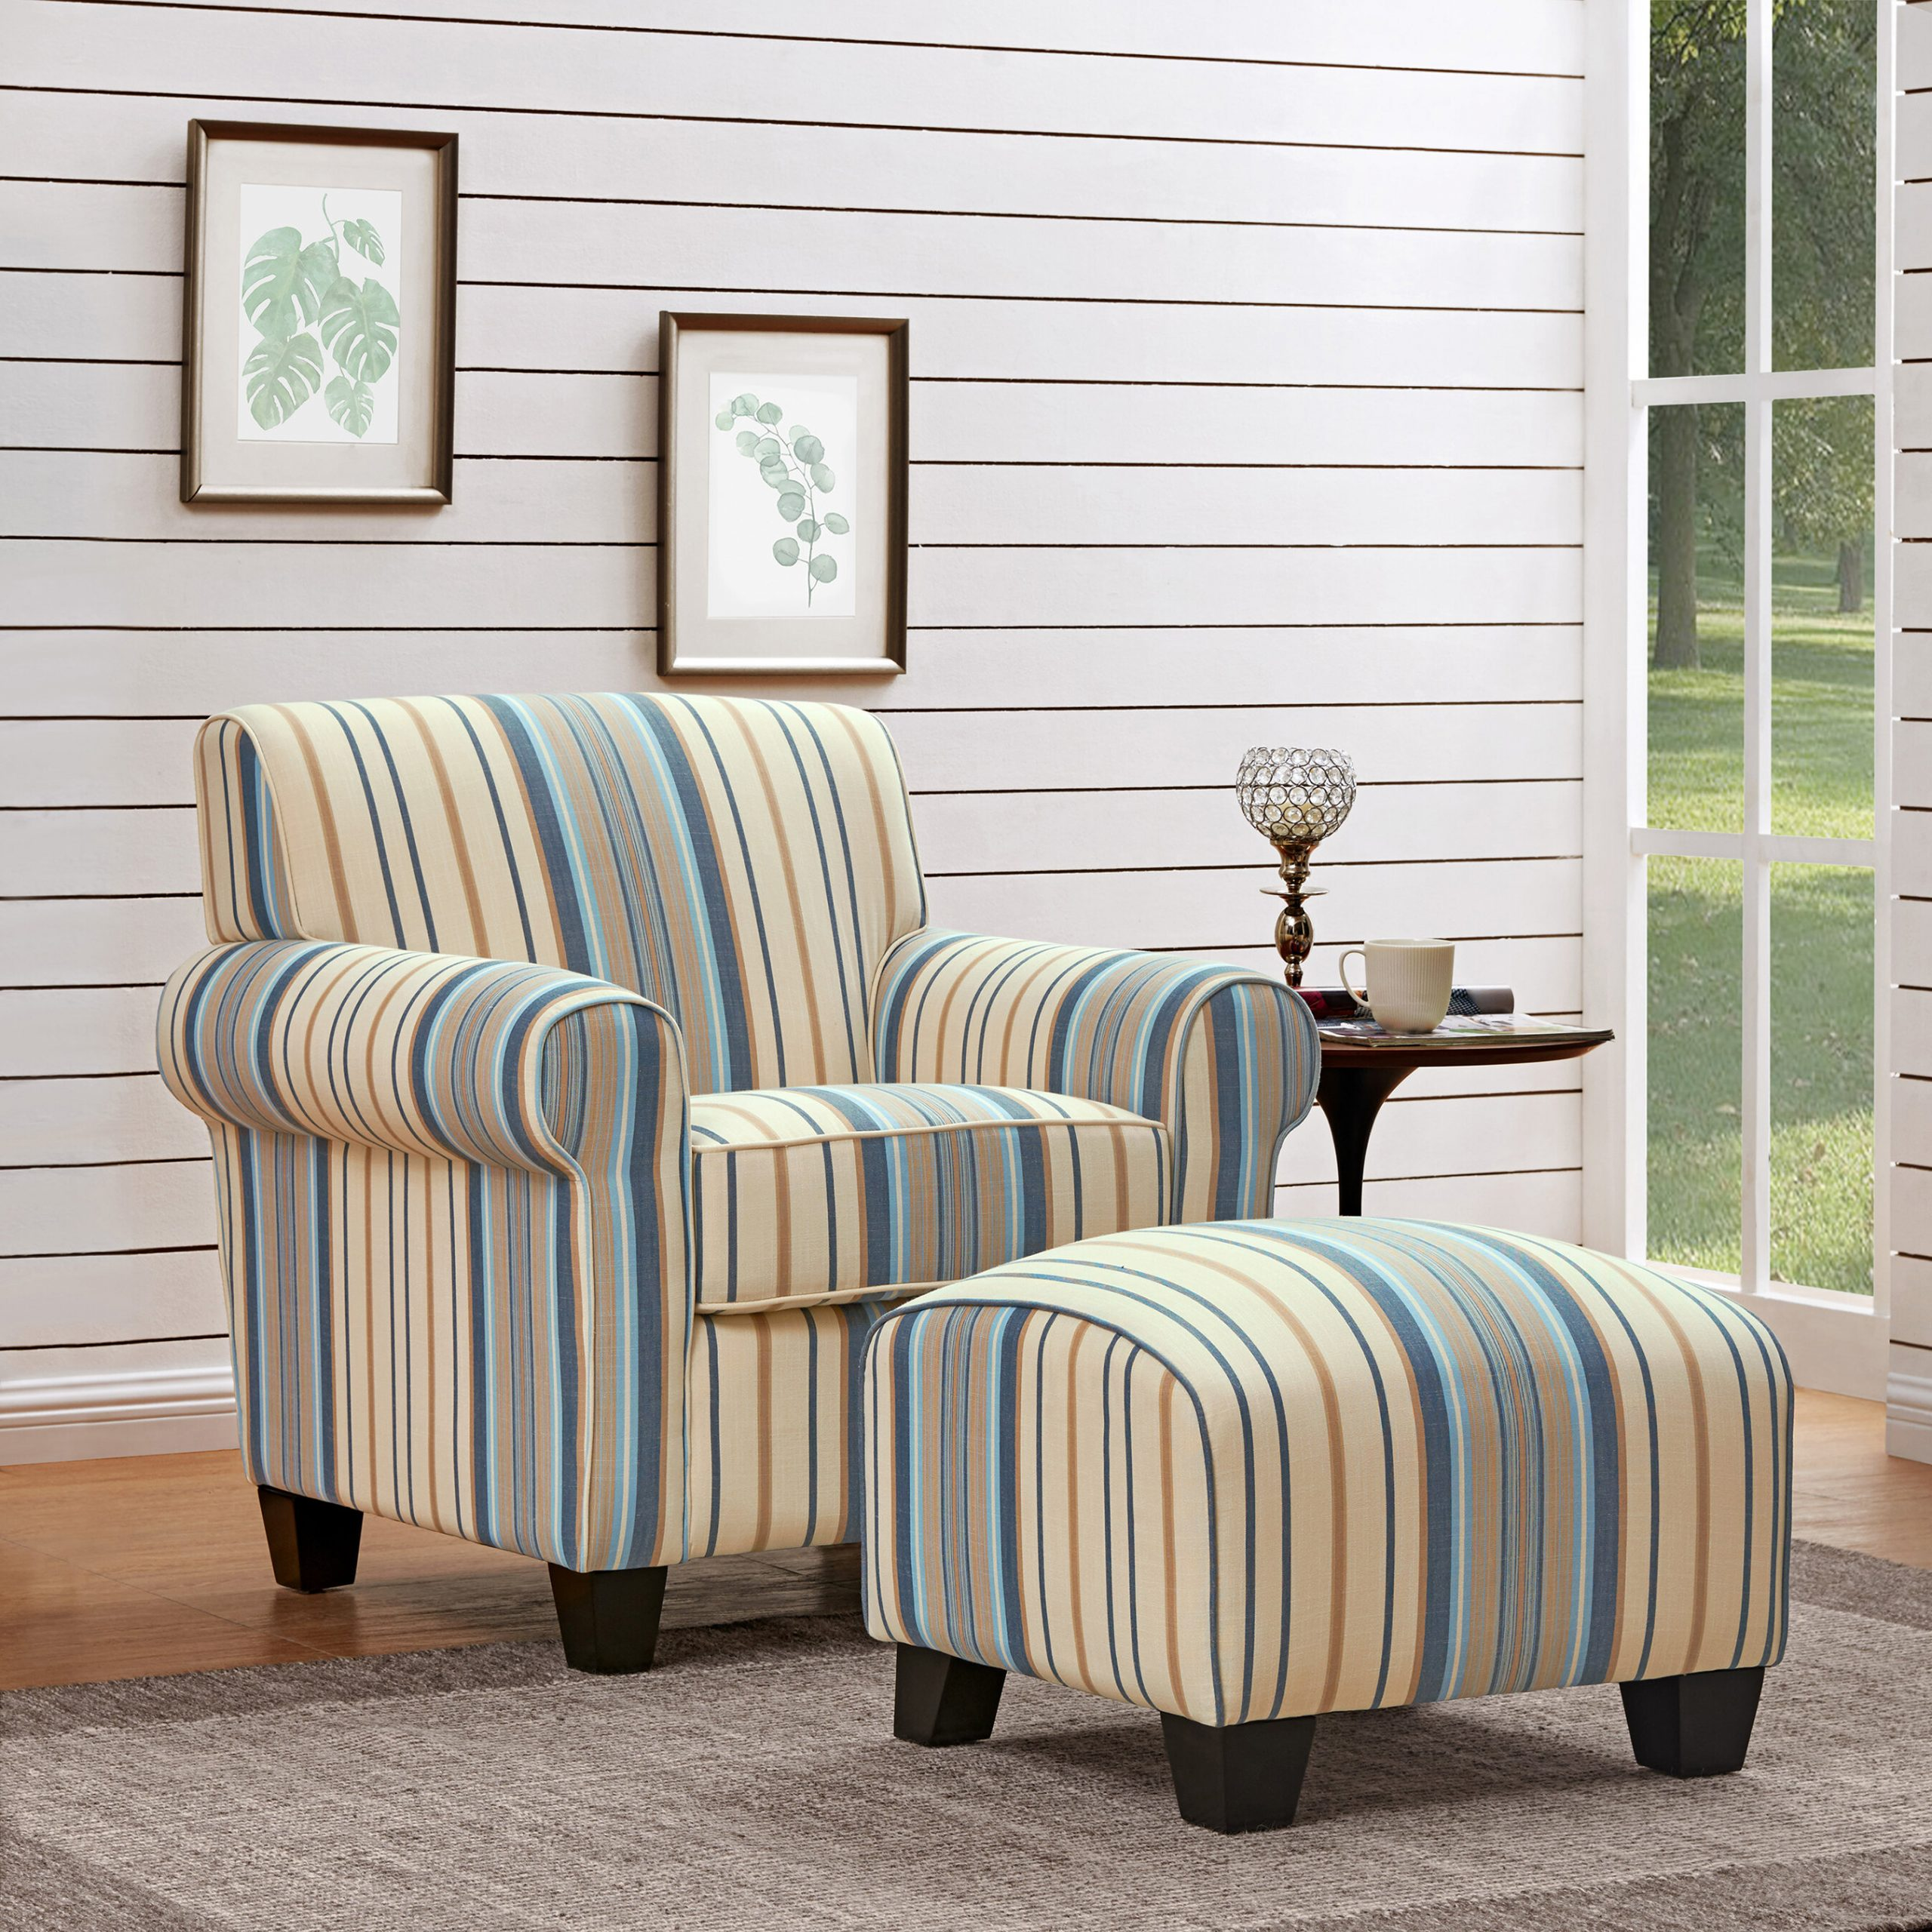 Popular Alexander Cotton Blend Armchairs And Ottoman For Arm Ottoman Included Accent Chairs You'll Love In  (View 4 of 20)